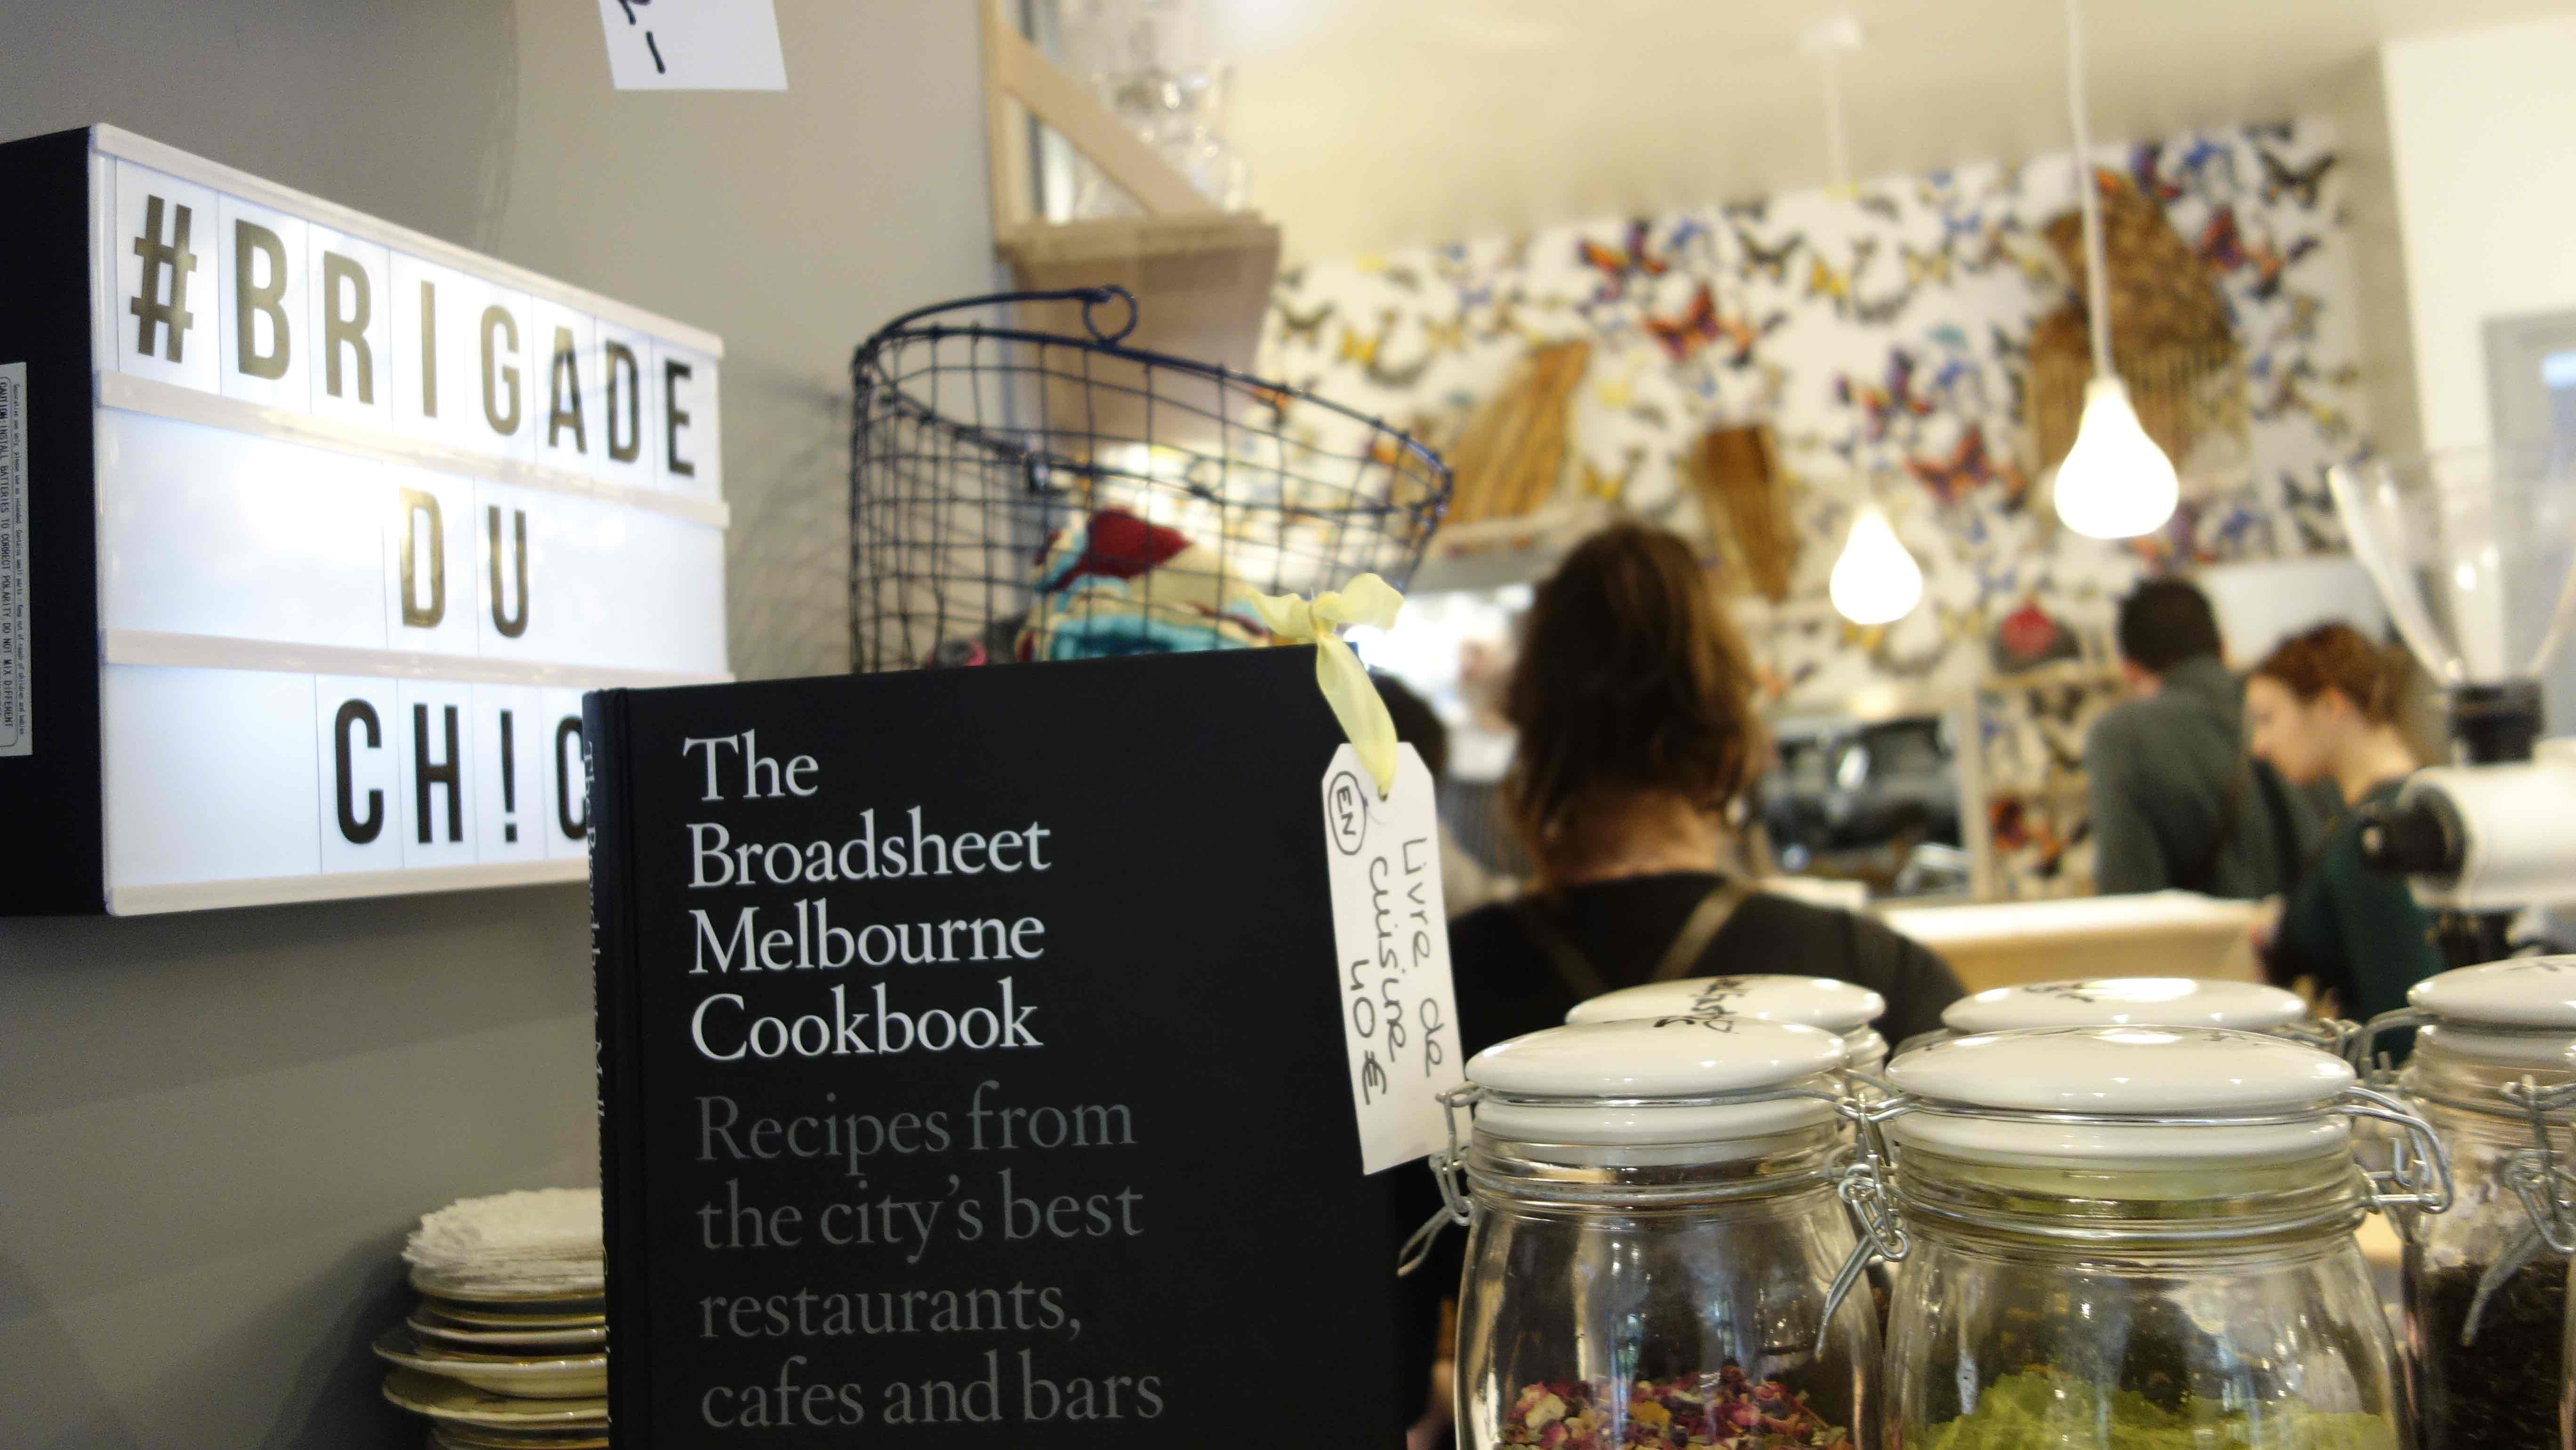 the broadstreet melbourne cookbook paris